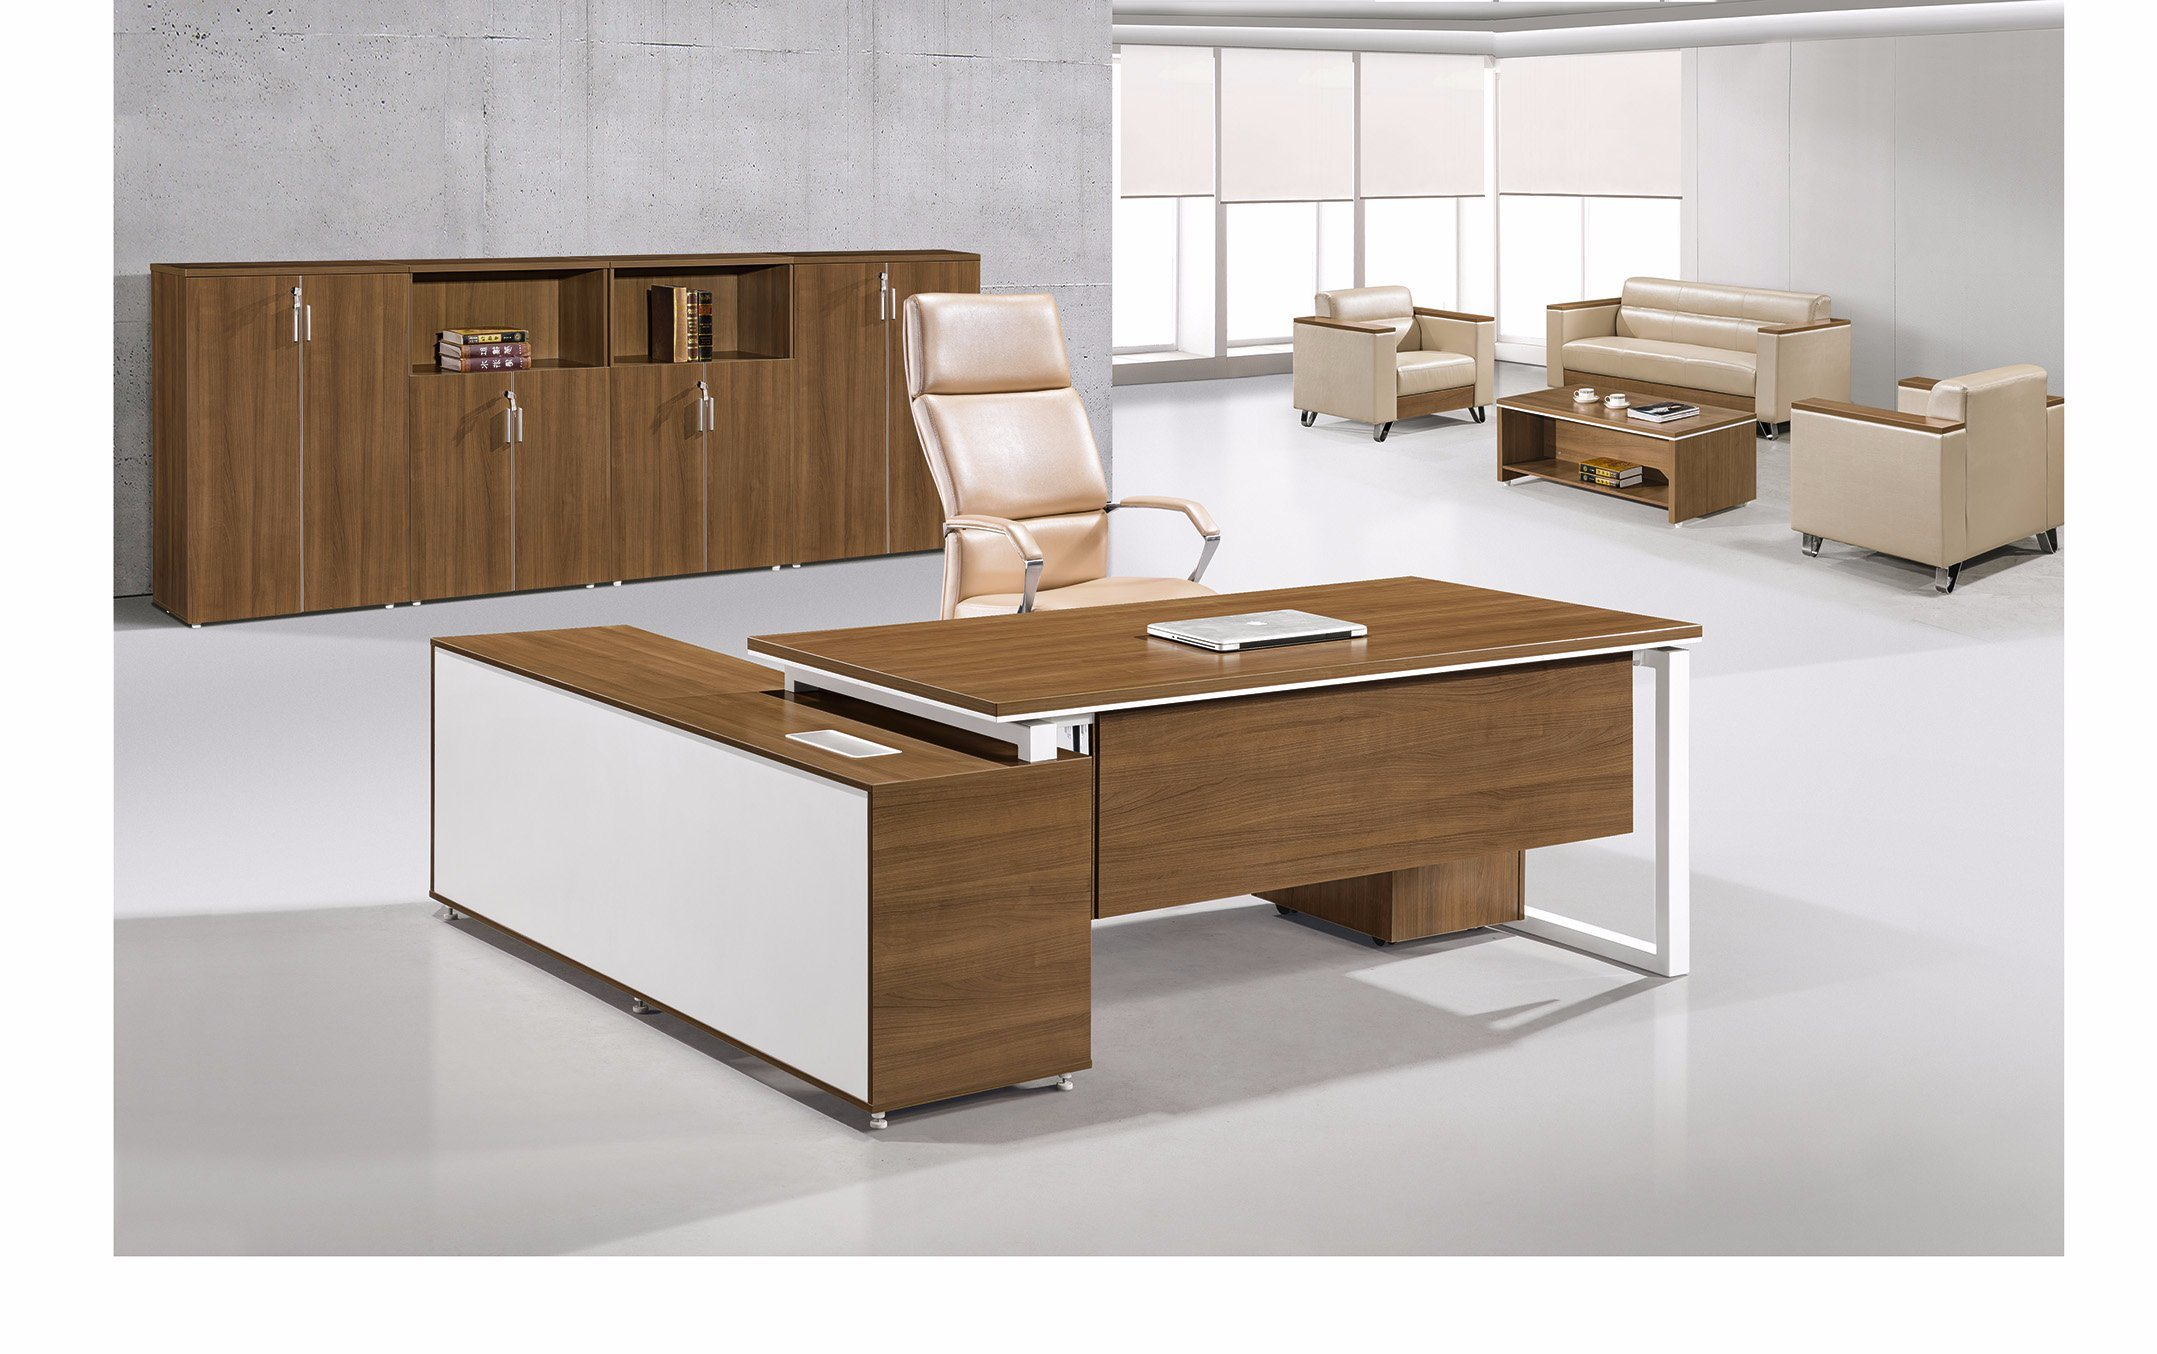 large office table. Office Desk , Workstation Chair File Cabinet Meeting Table Reception Coffee Table, Customized Design. Large